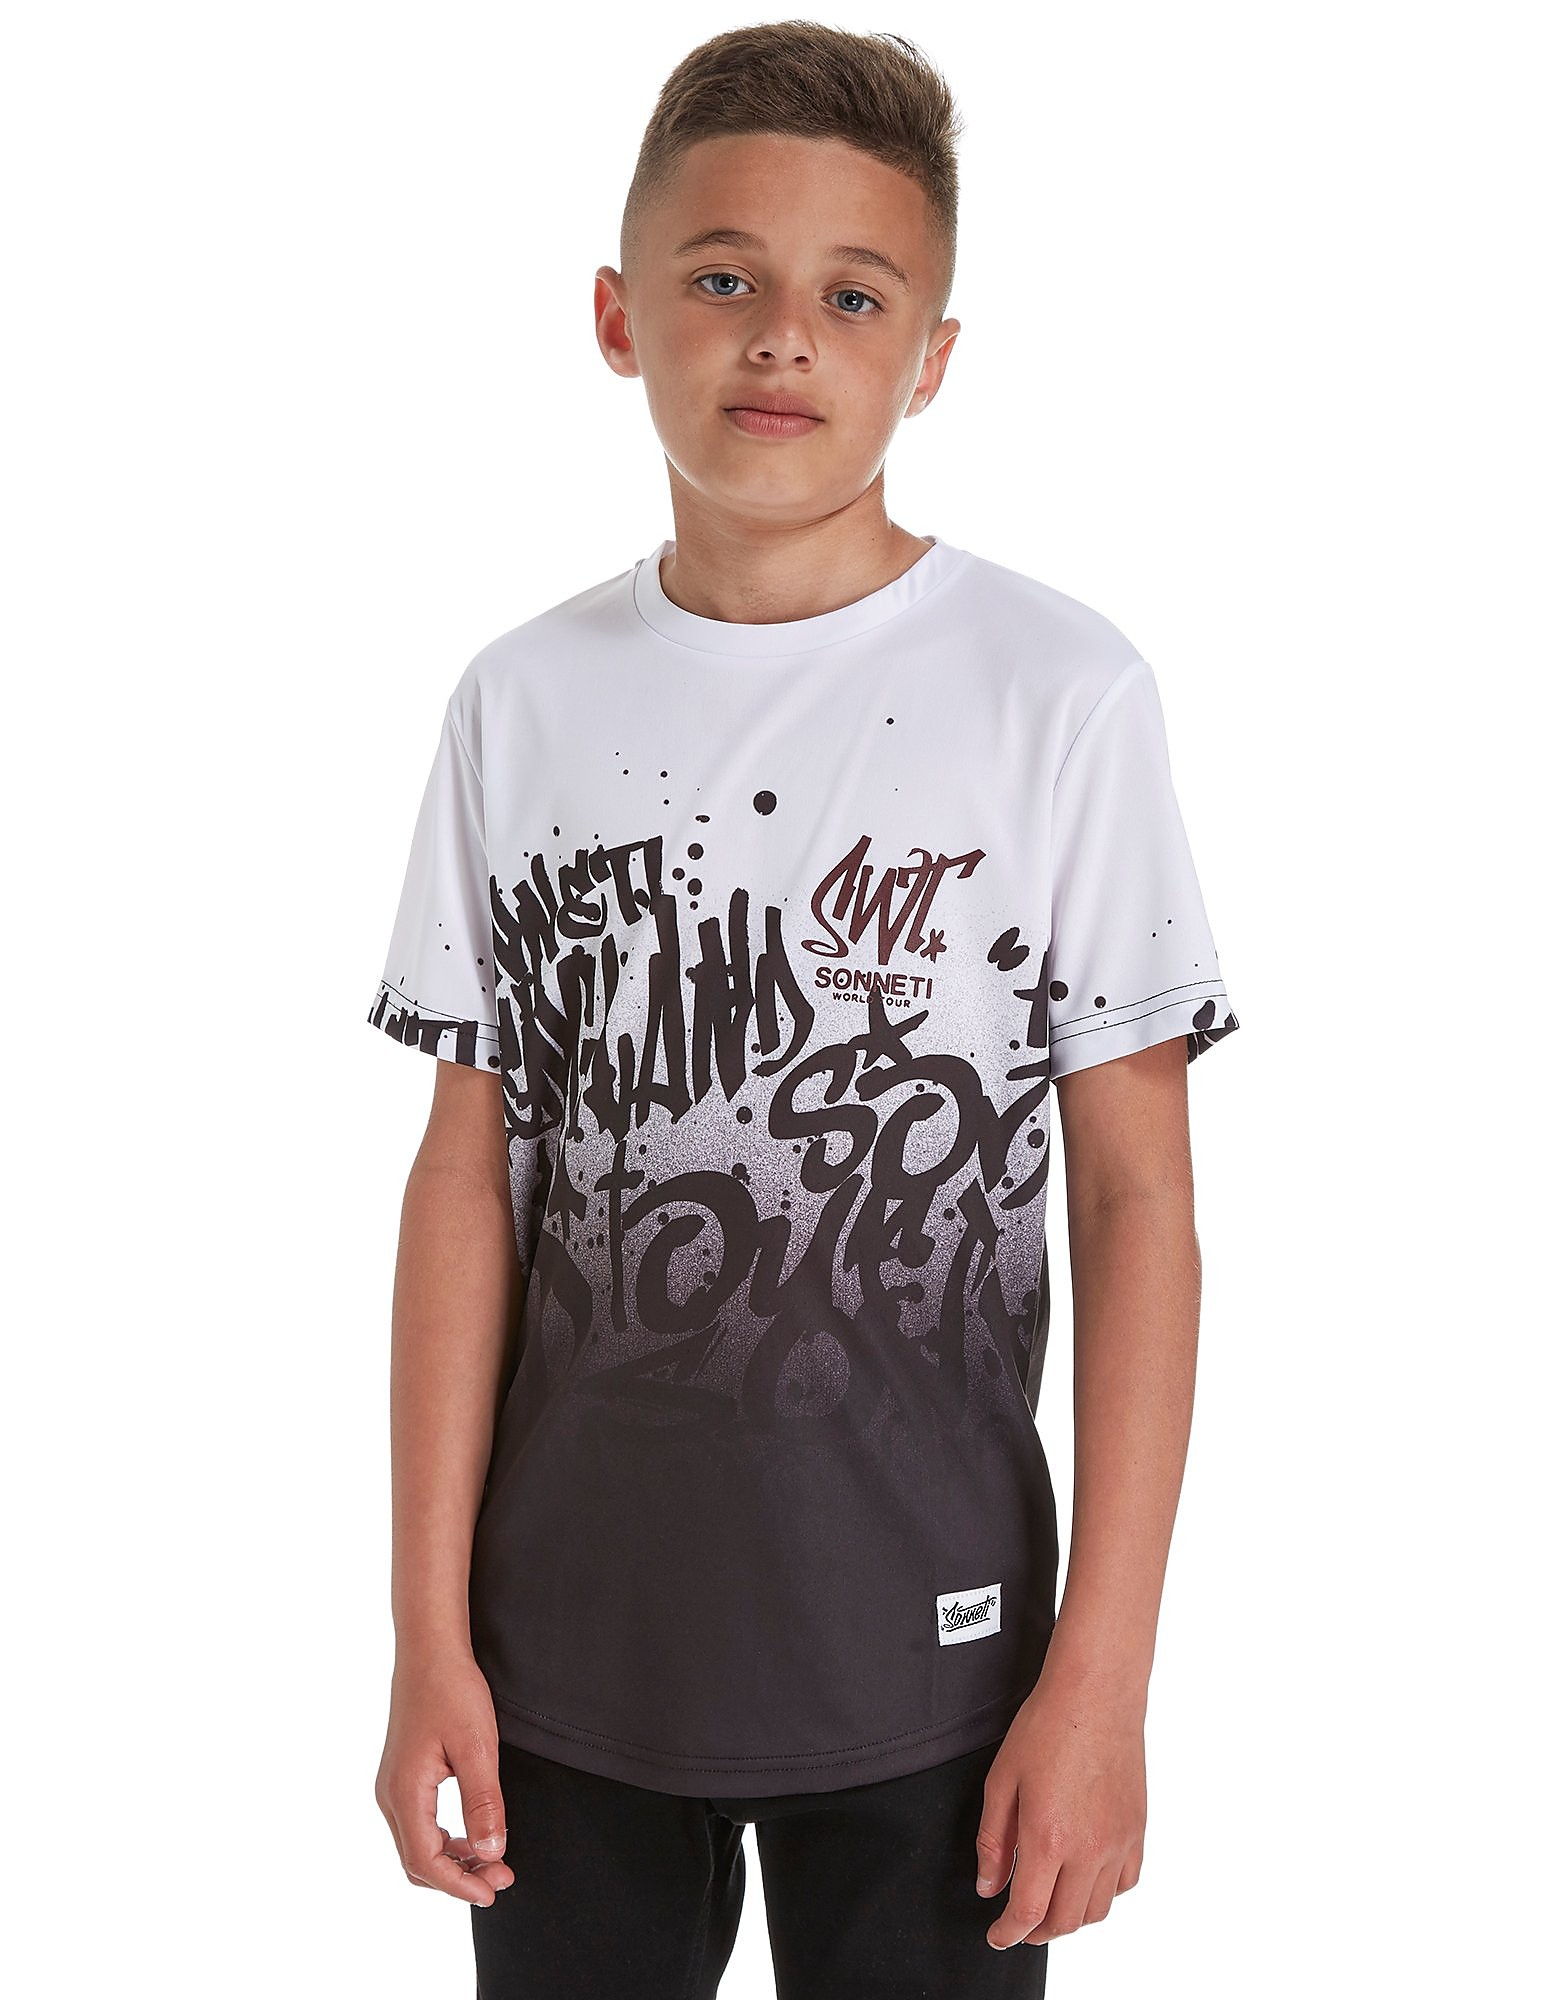 Sonneti Tagged T-Shirt Junior